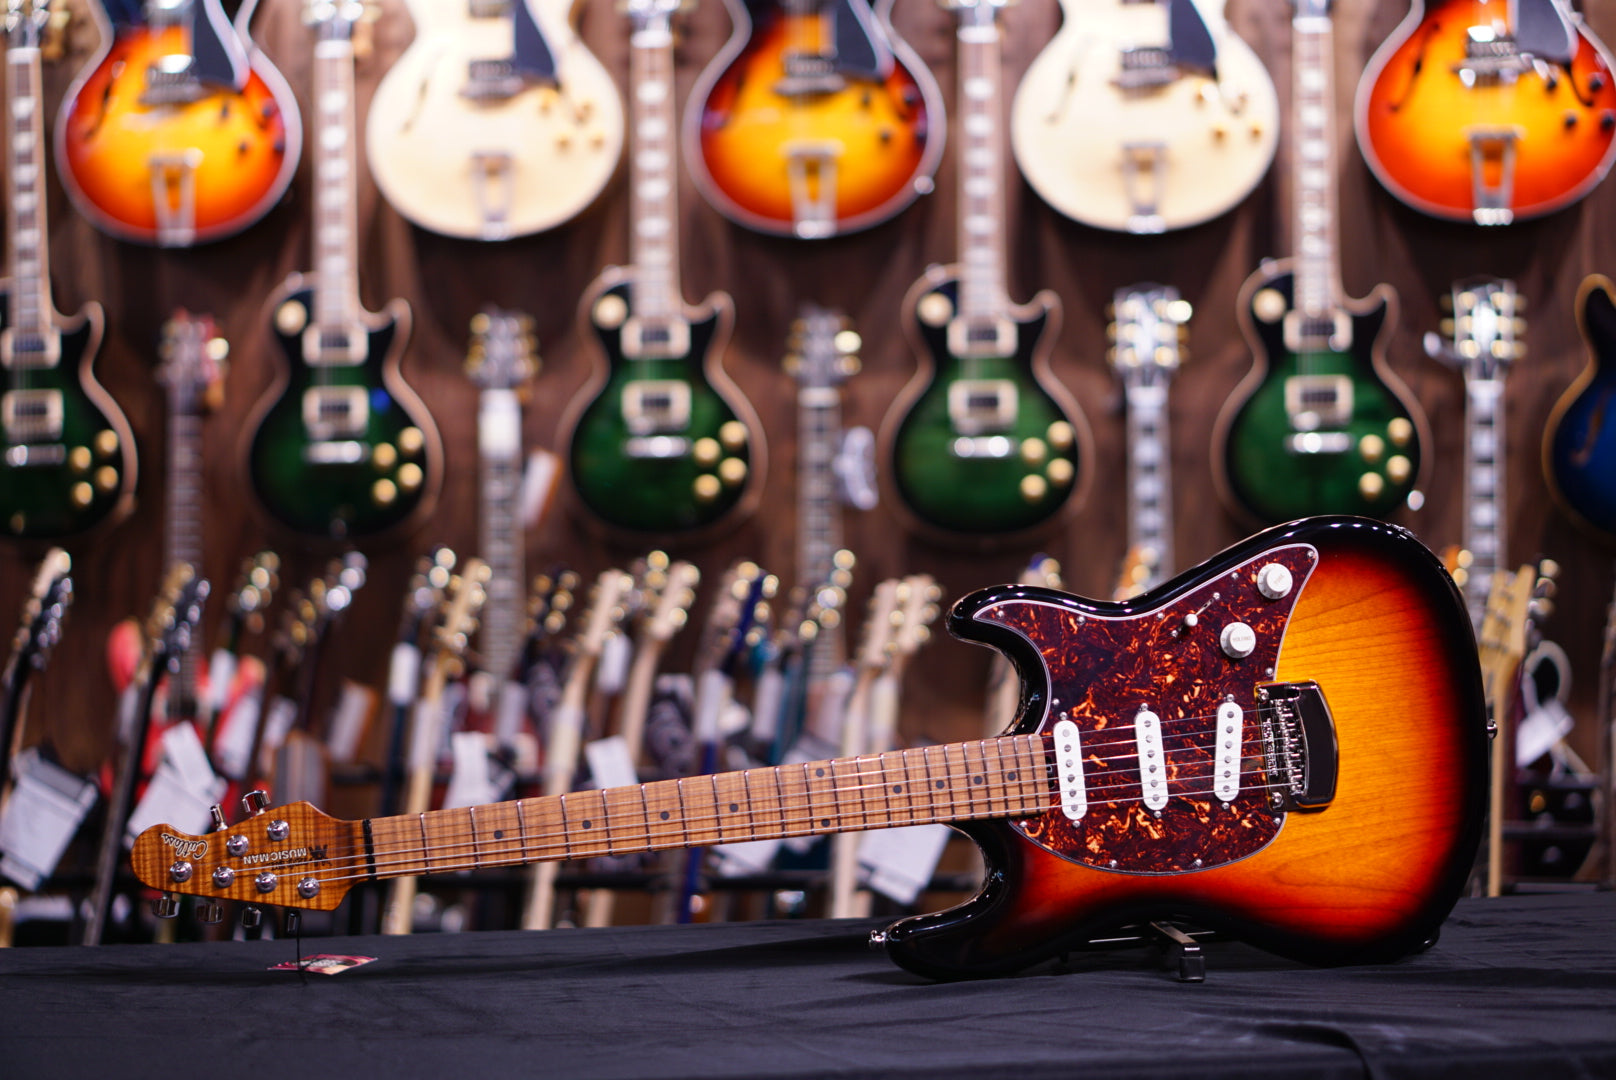 Music Man Cutlass Rs - Vintage Sunburst  Roasted Mapleg88369 - HIENDGUITAR   HIENDGUITAR.COM GUITAR